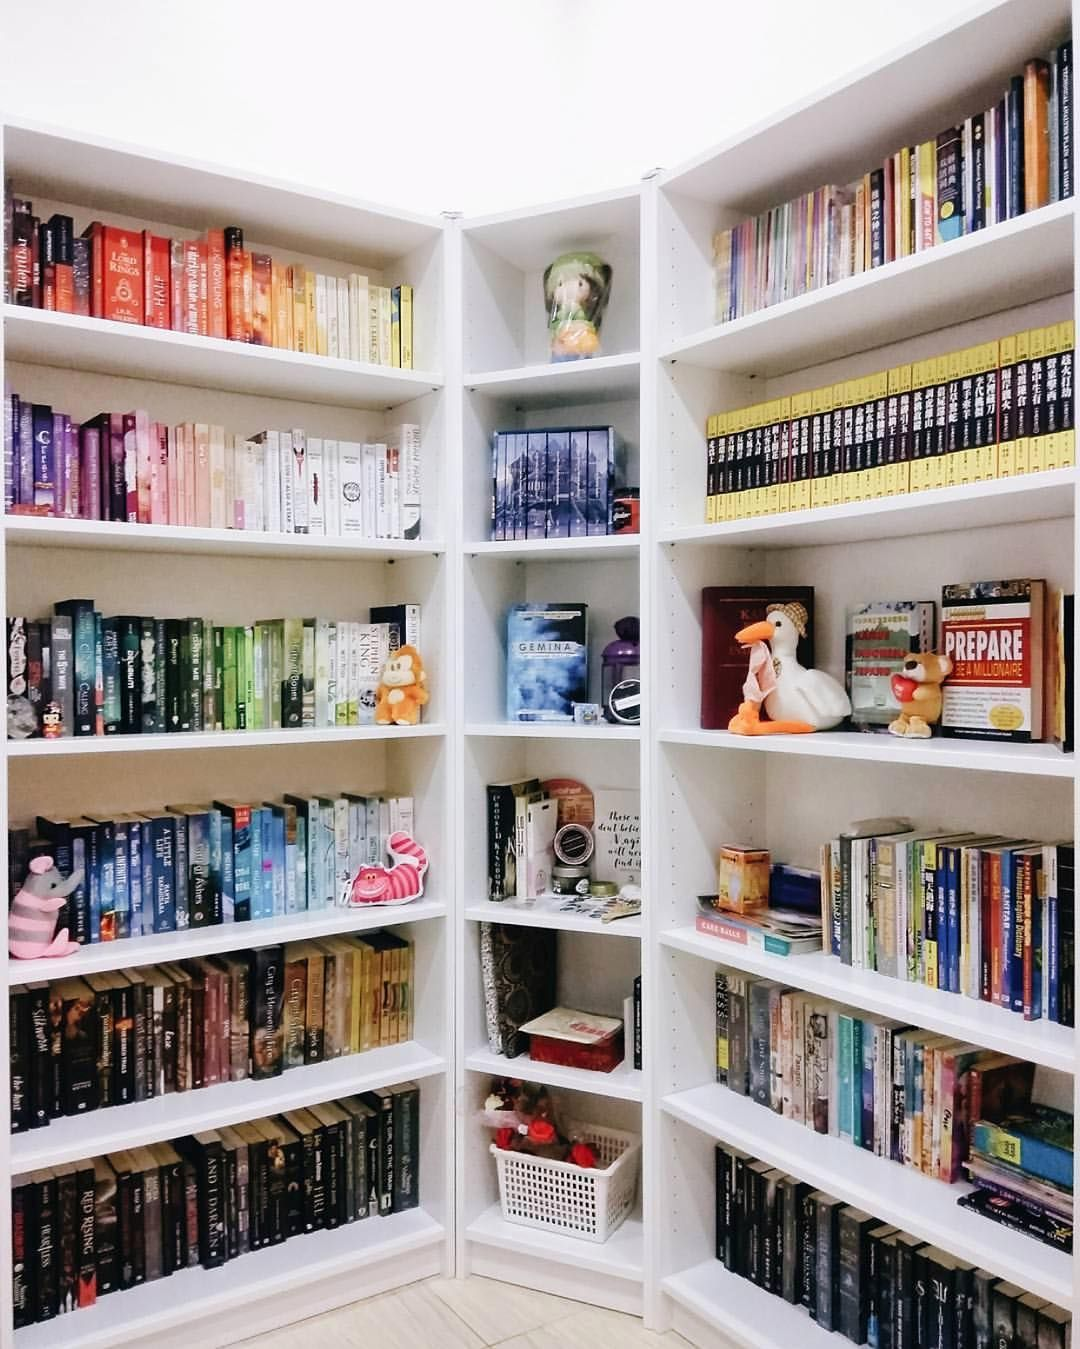 Bookstagram Feature Account Bookstagramfeatures O Instagram Photos And Videos Lectura Bibliotecas